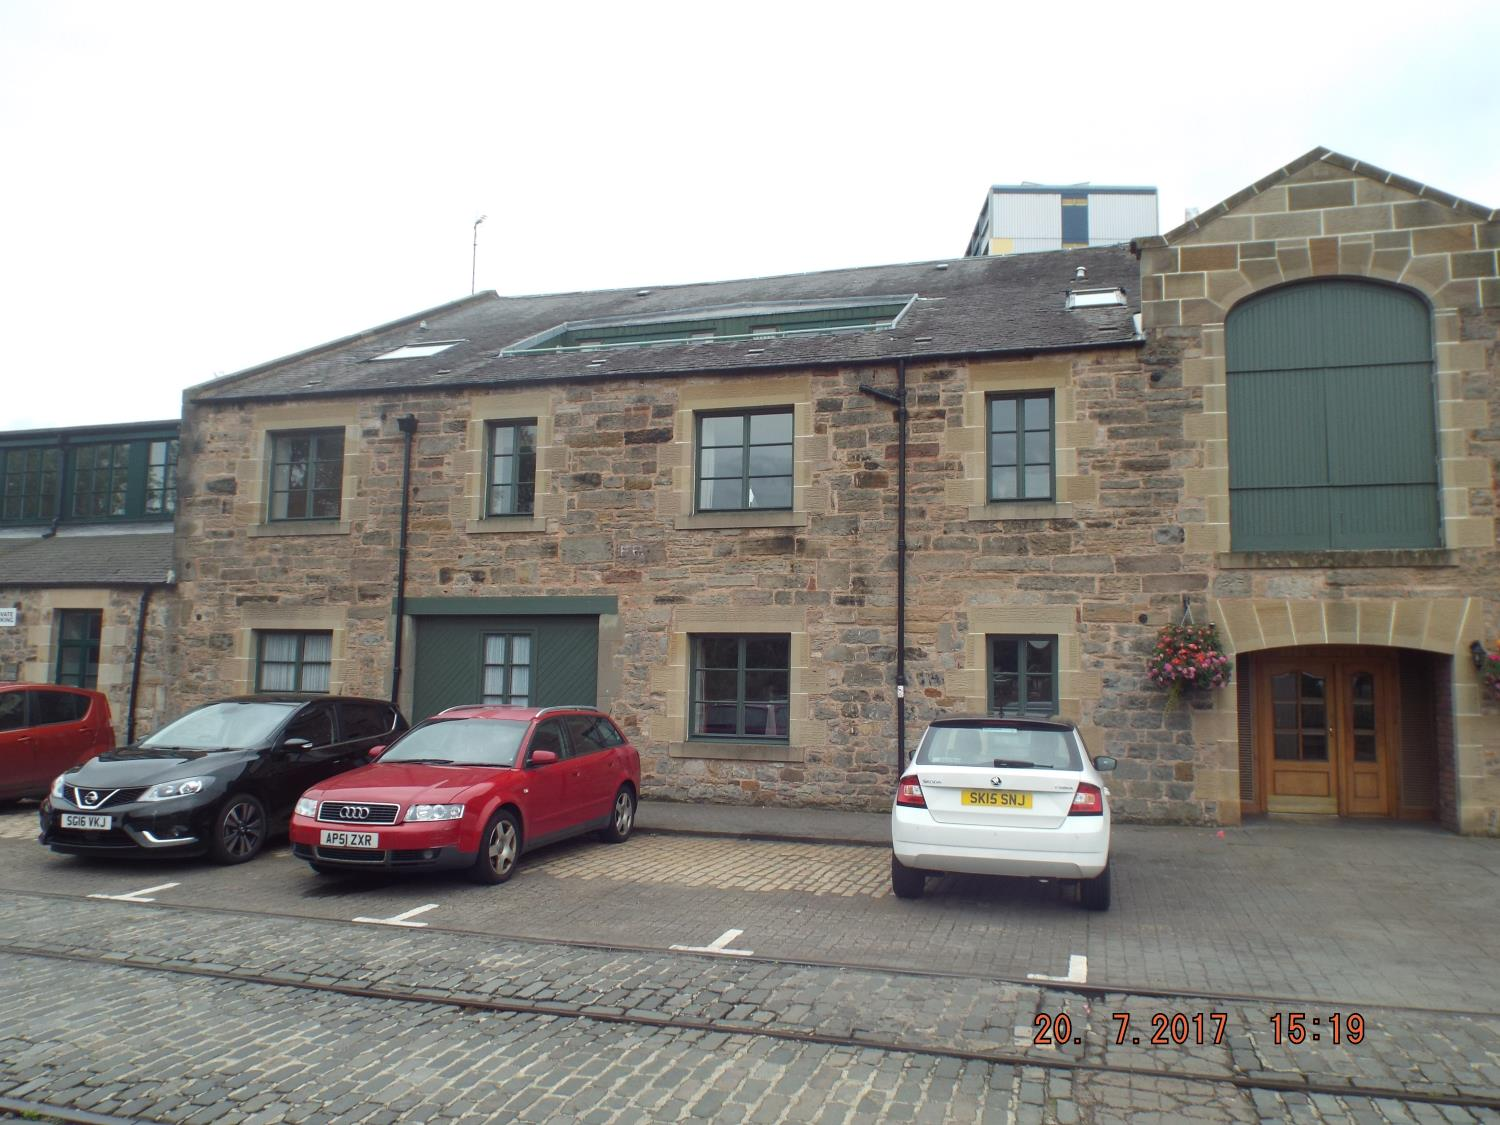 View property for rent The Moorings, Commercial Street, Leith